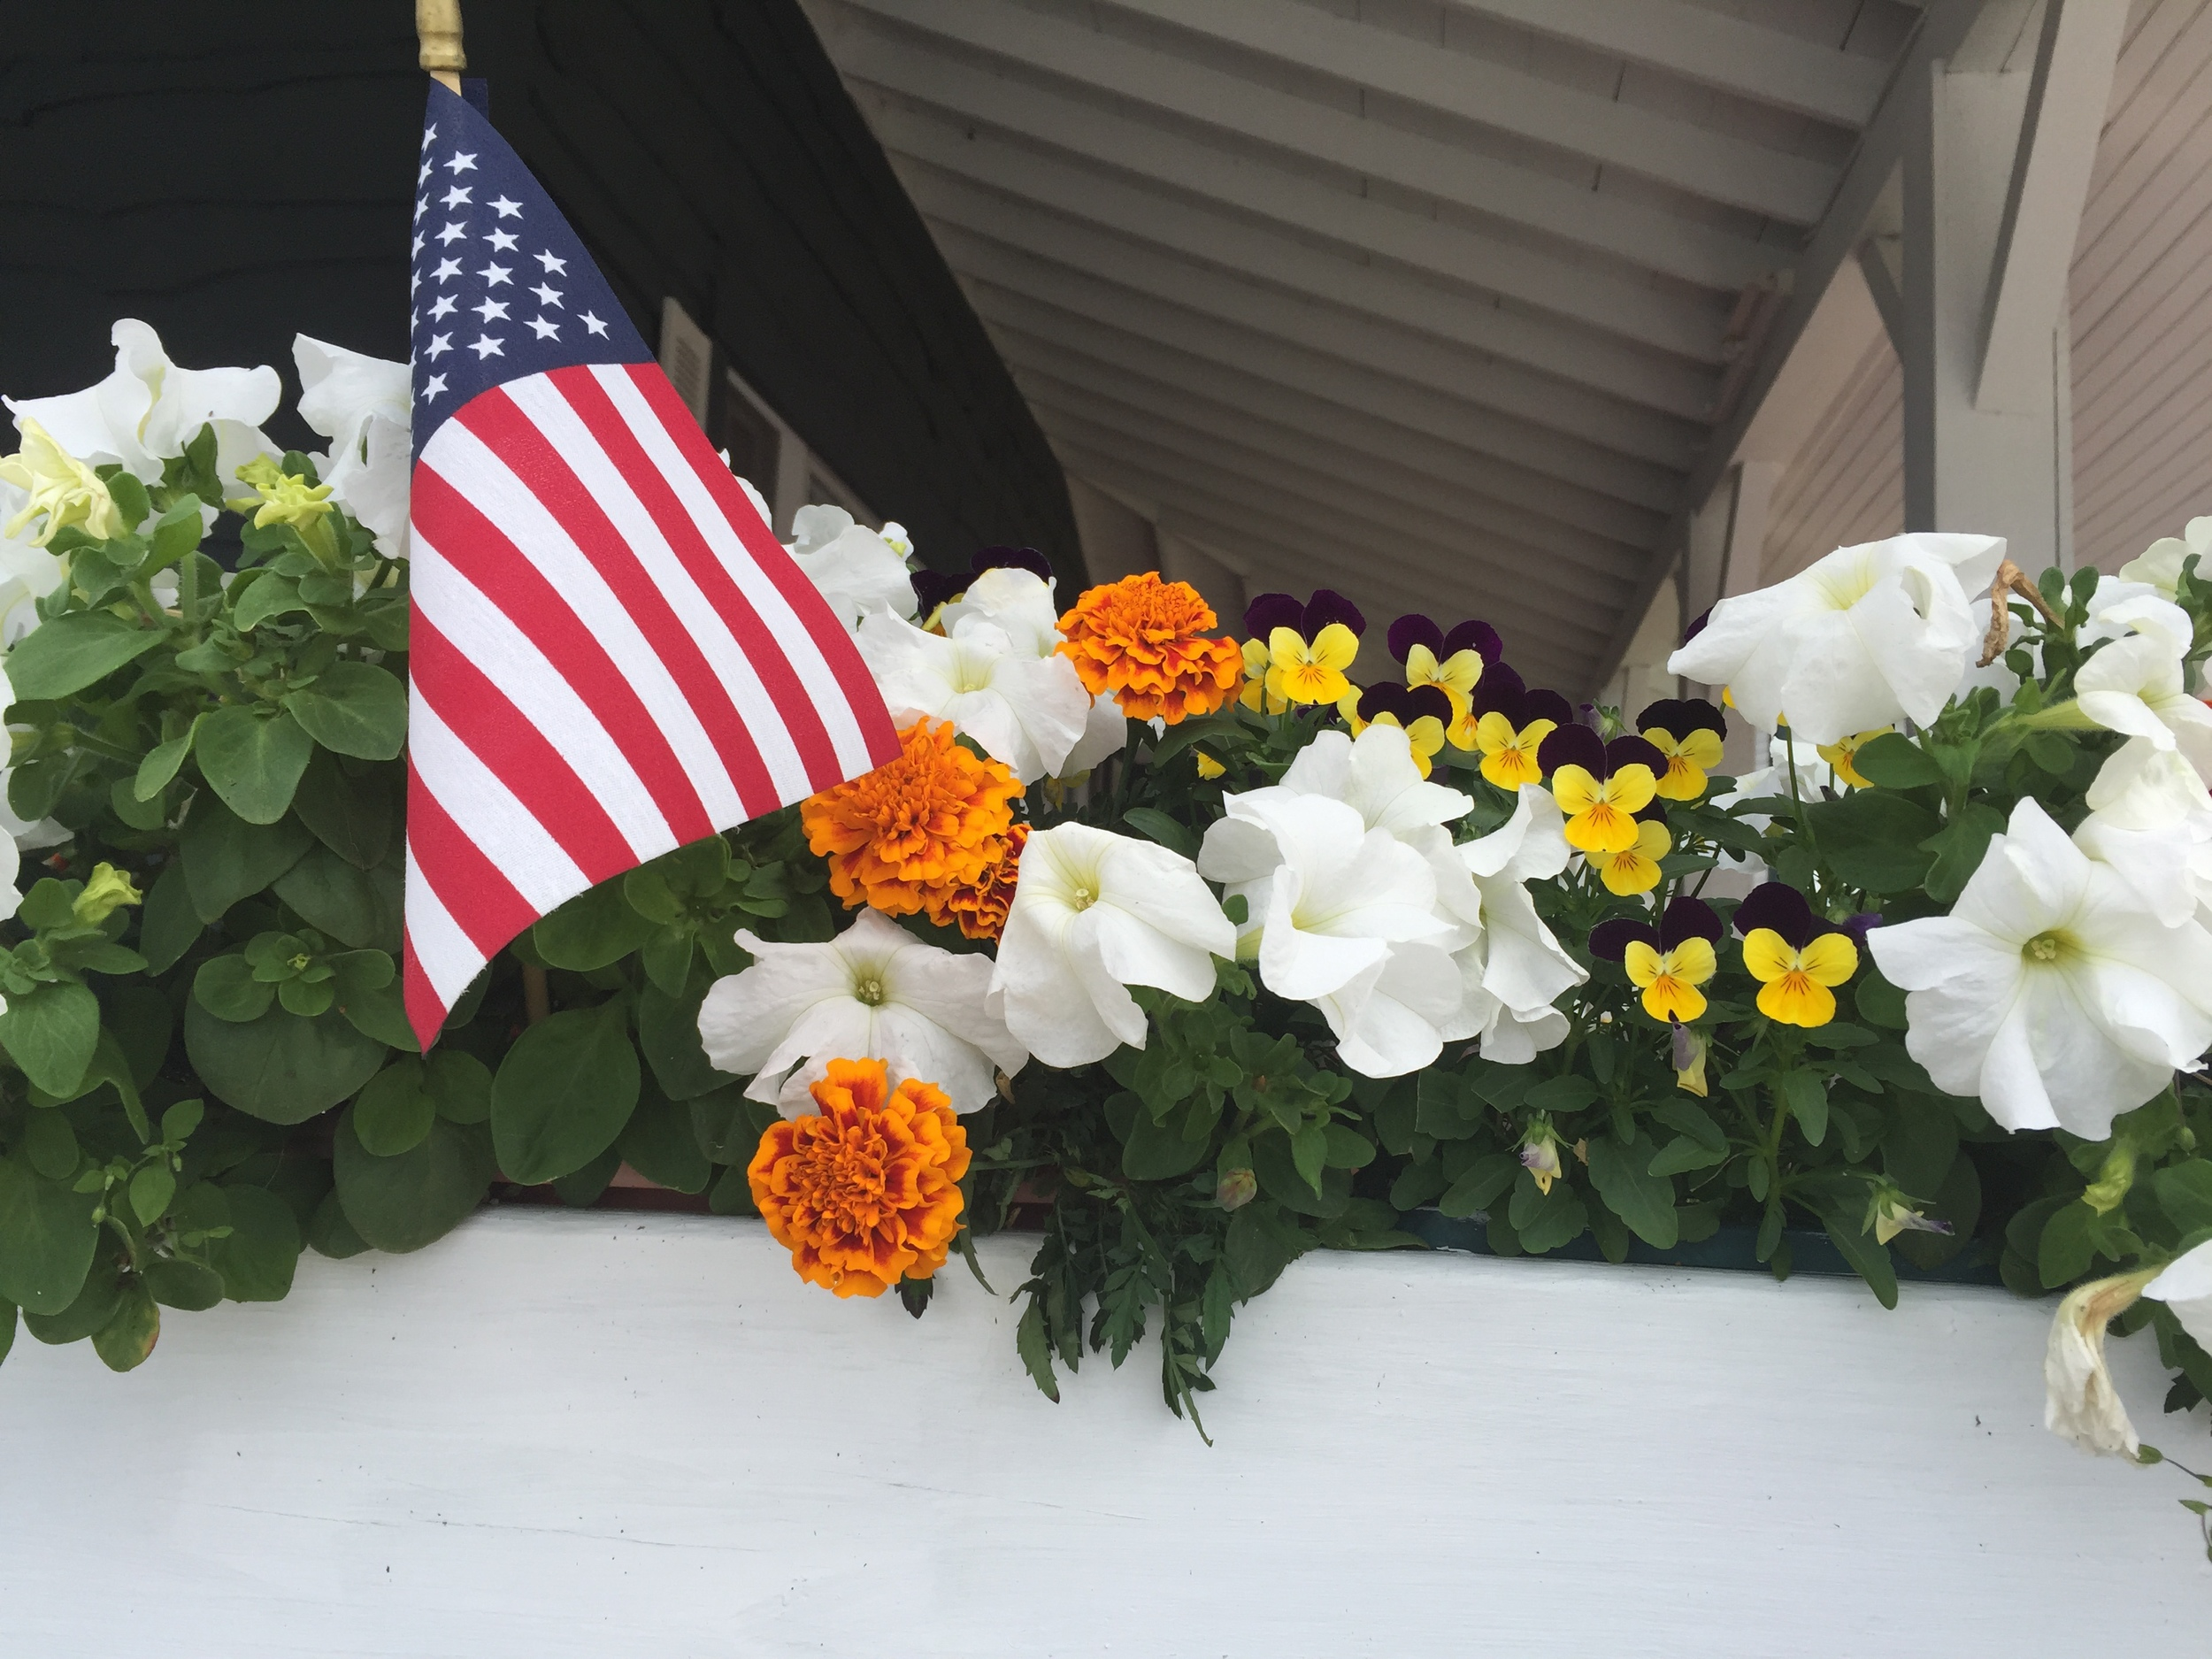 Flags and flowers, another of the many Adirondack traditions